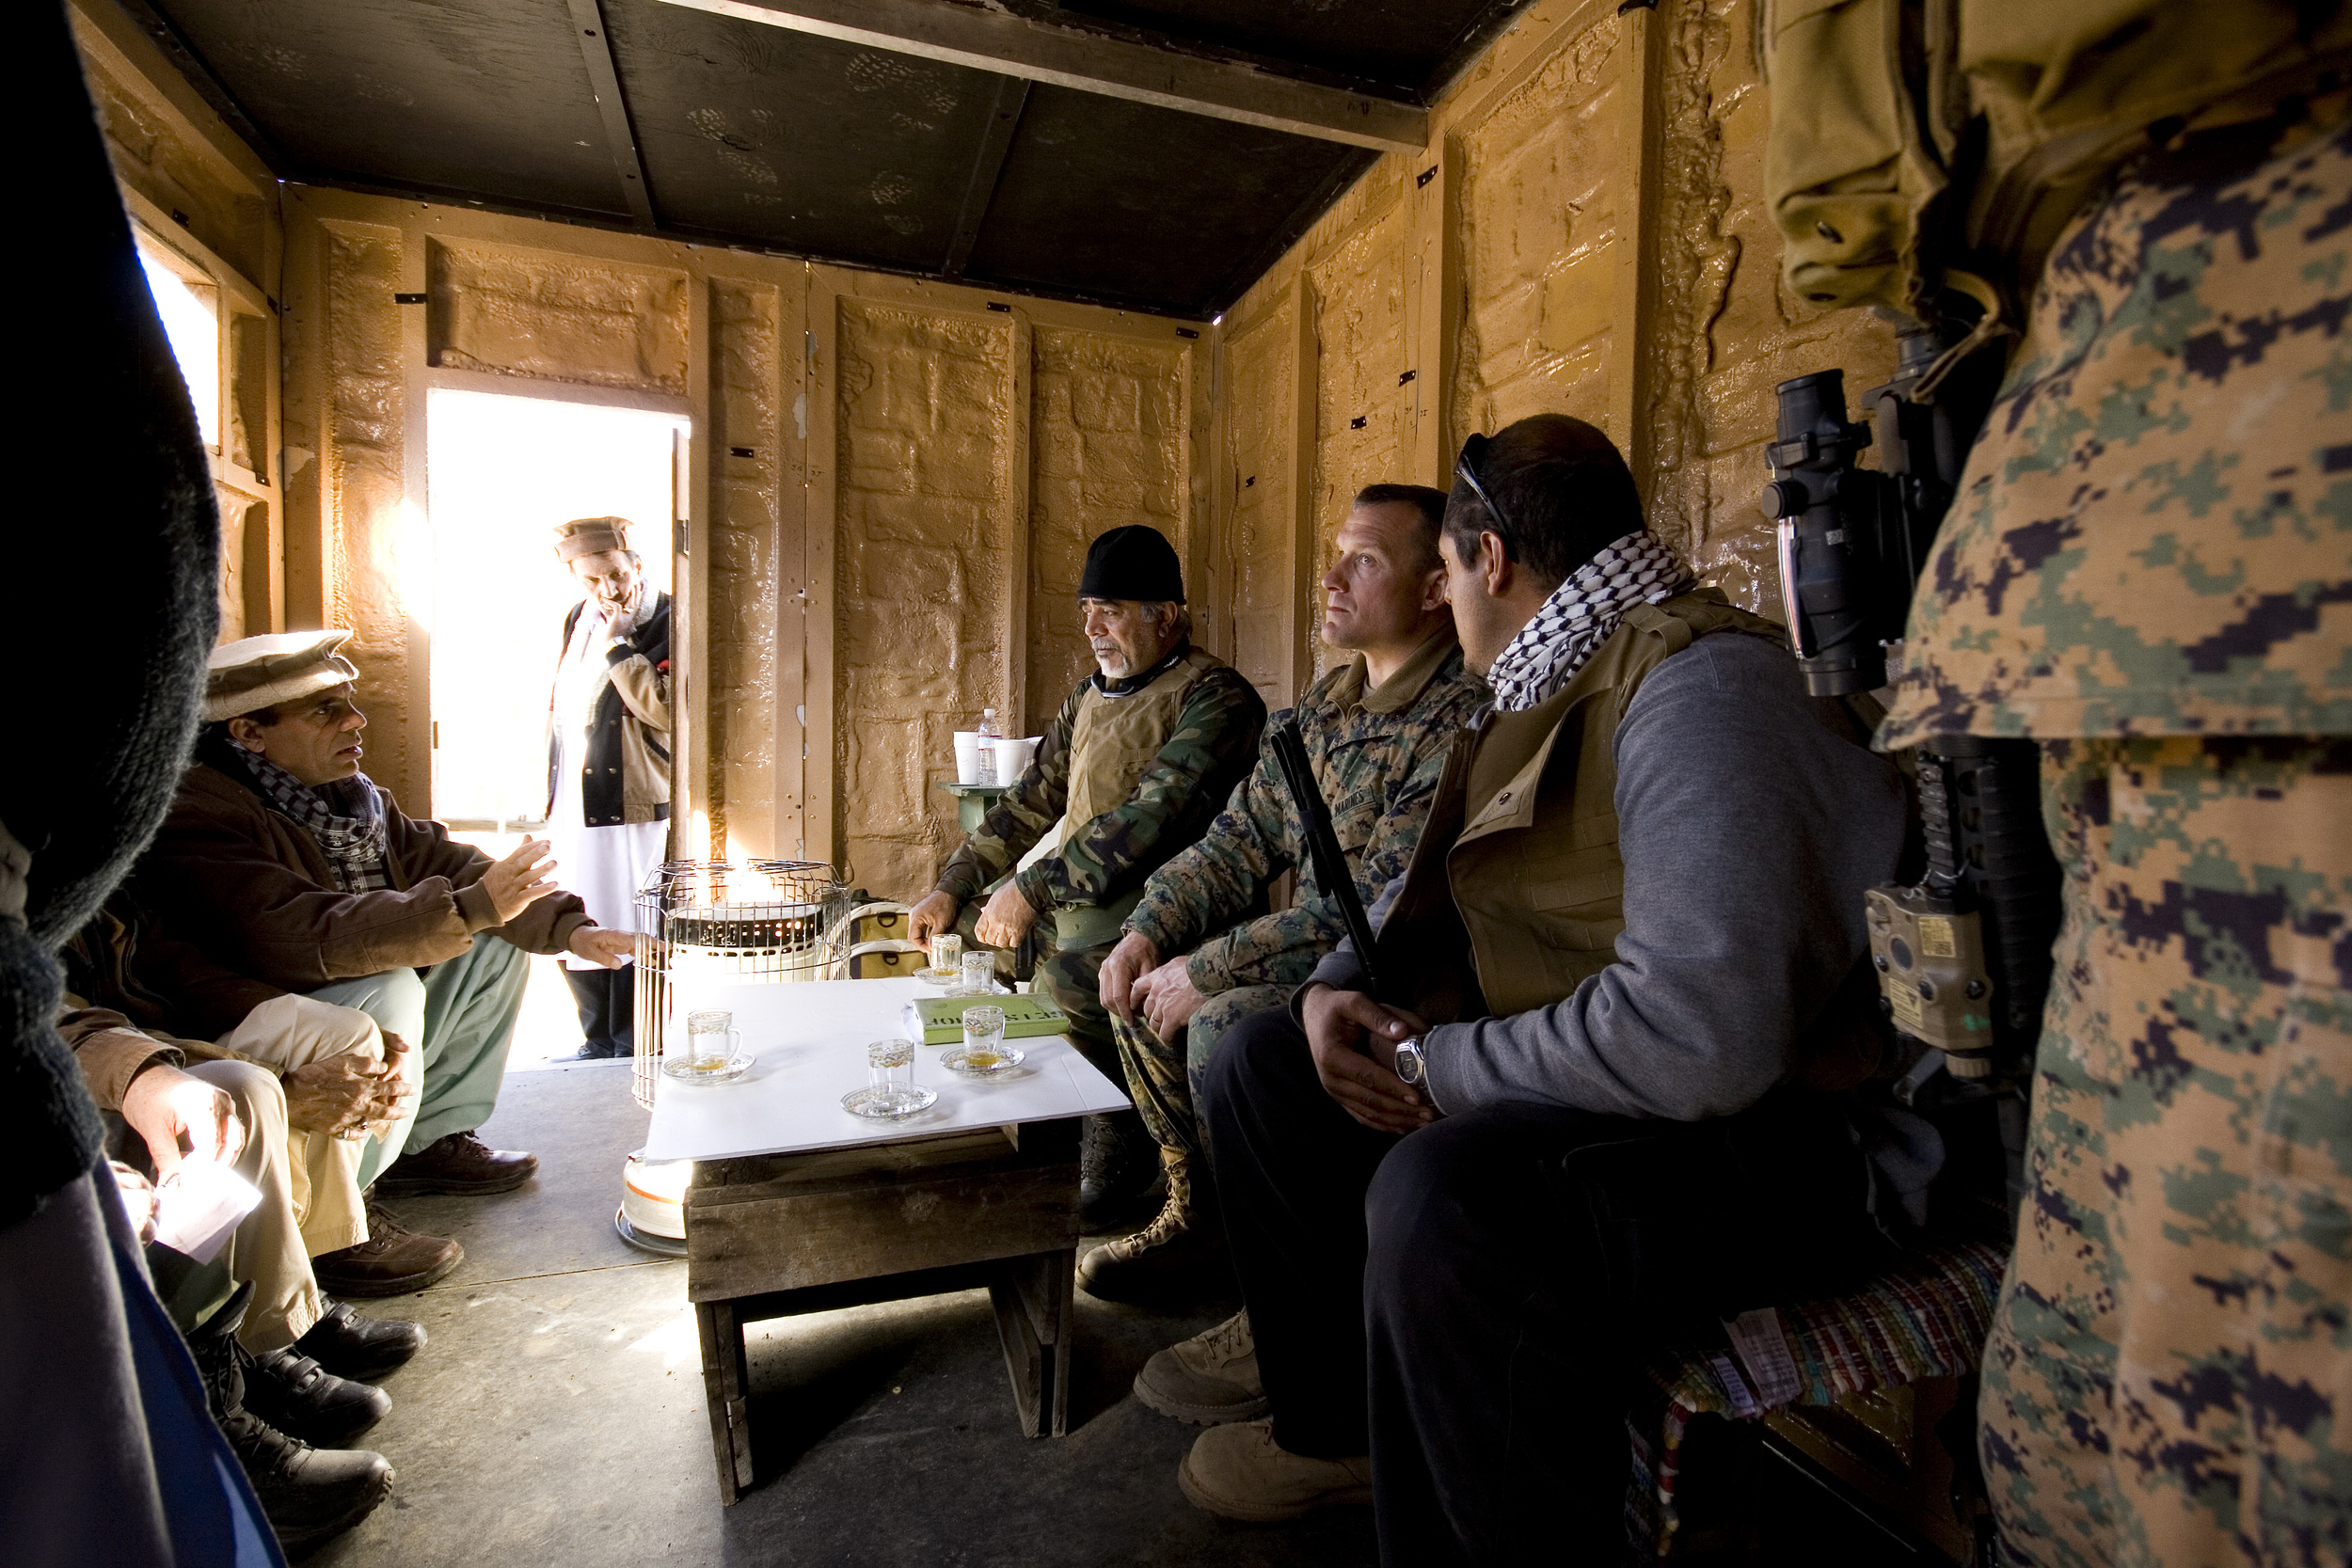 A meeting with village leaders. Credit: Andy Isaacson